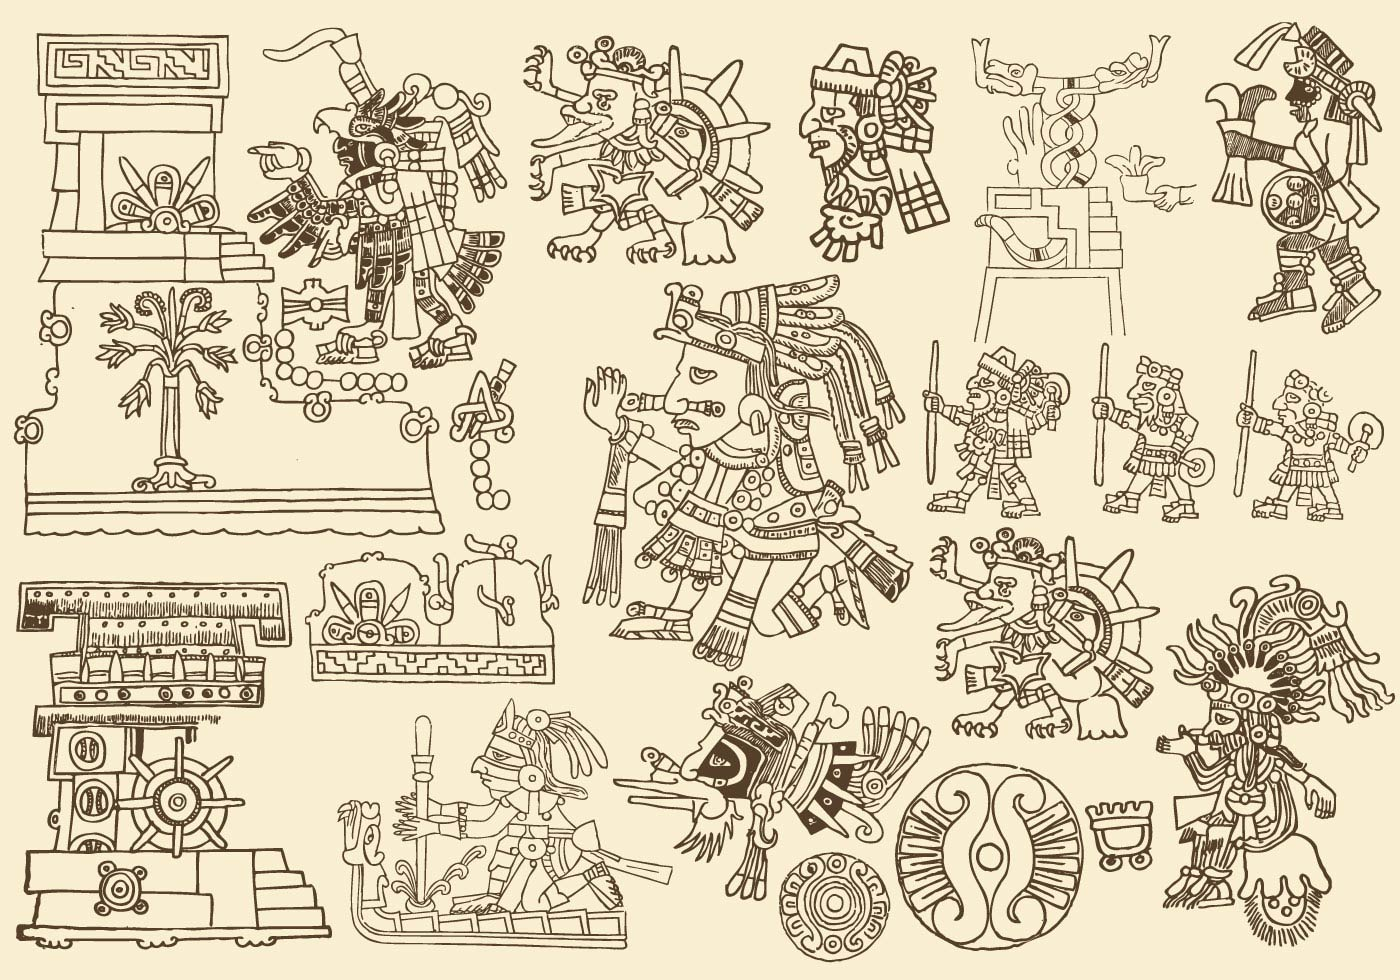 antique aztec drawings download free vector art  stock native american victorville usp native american victory day